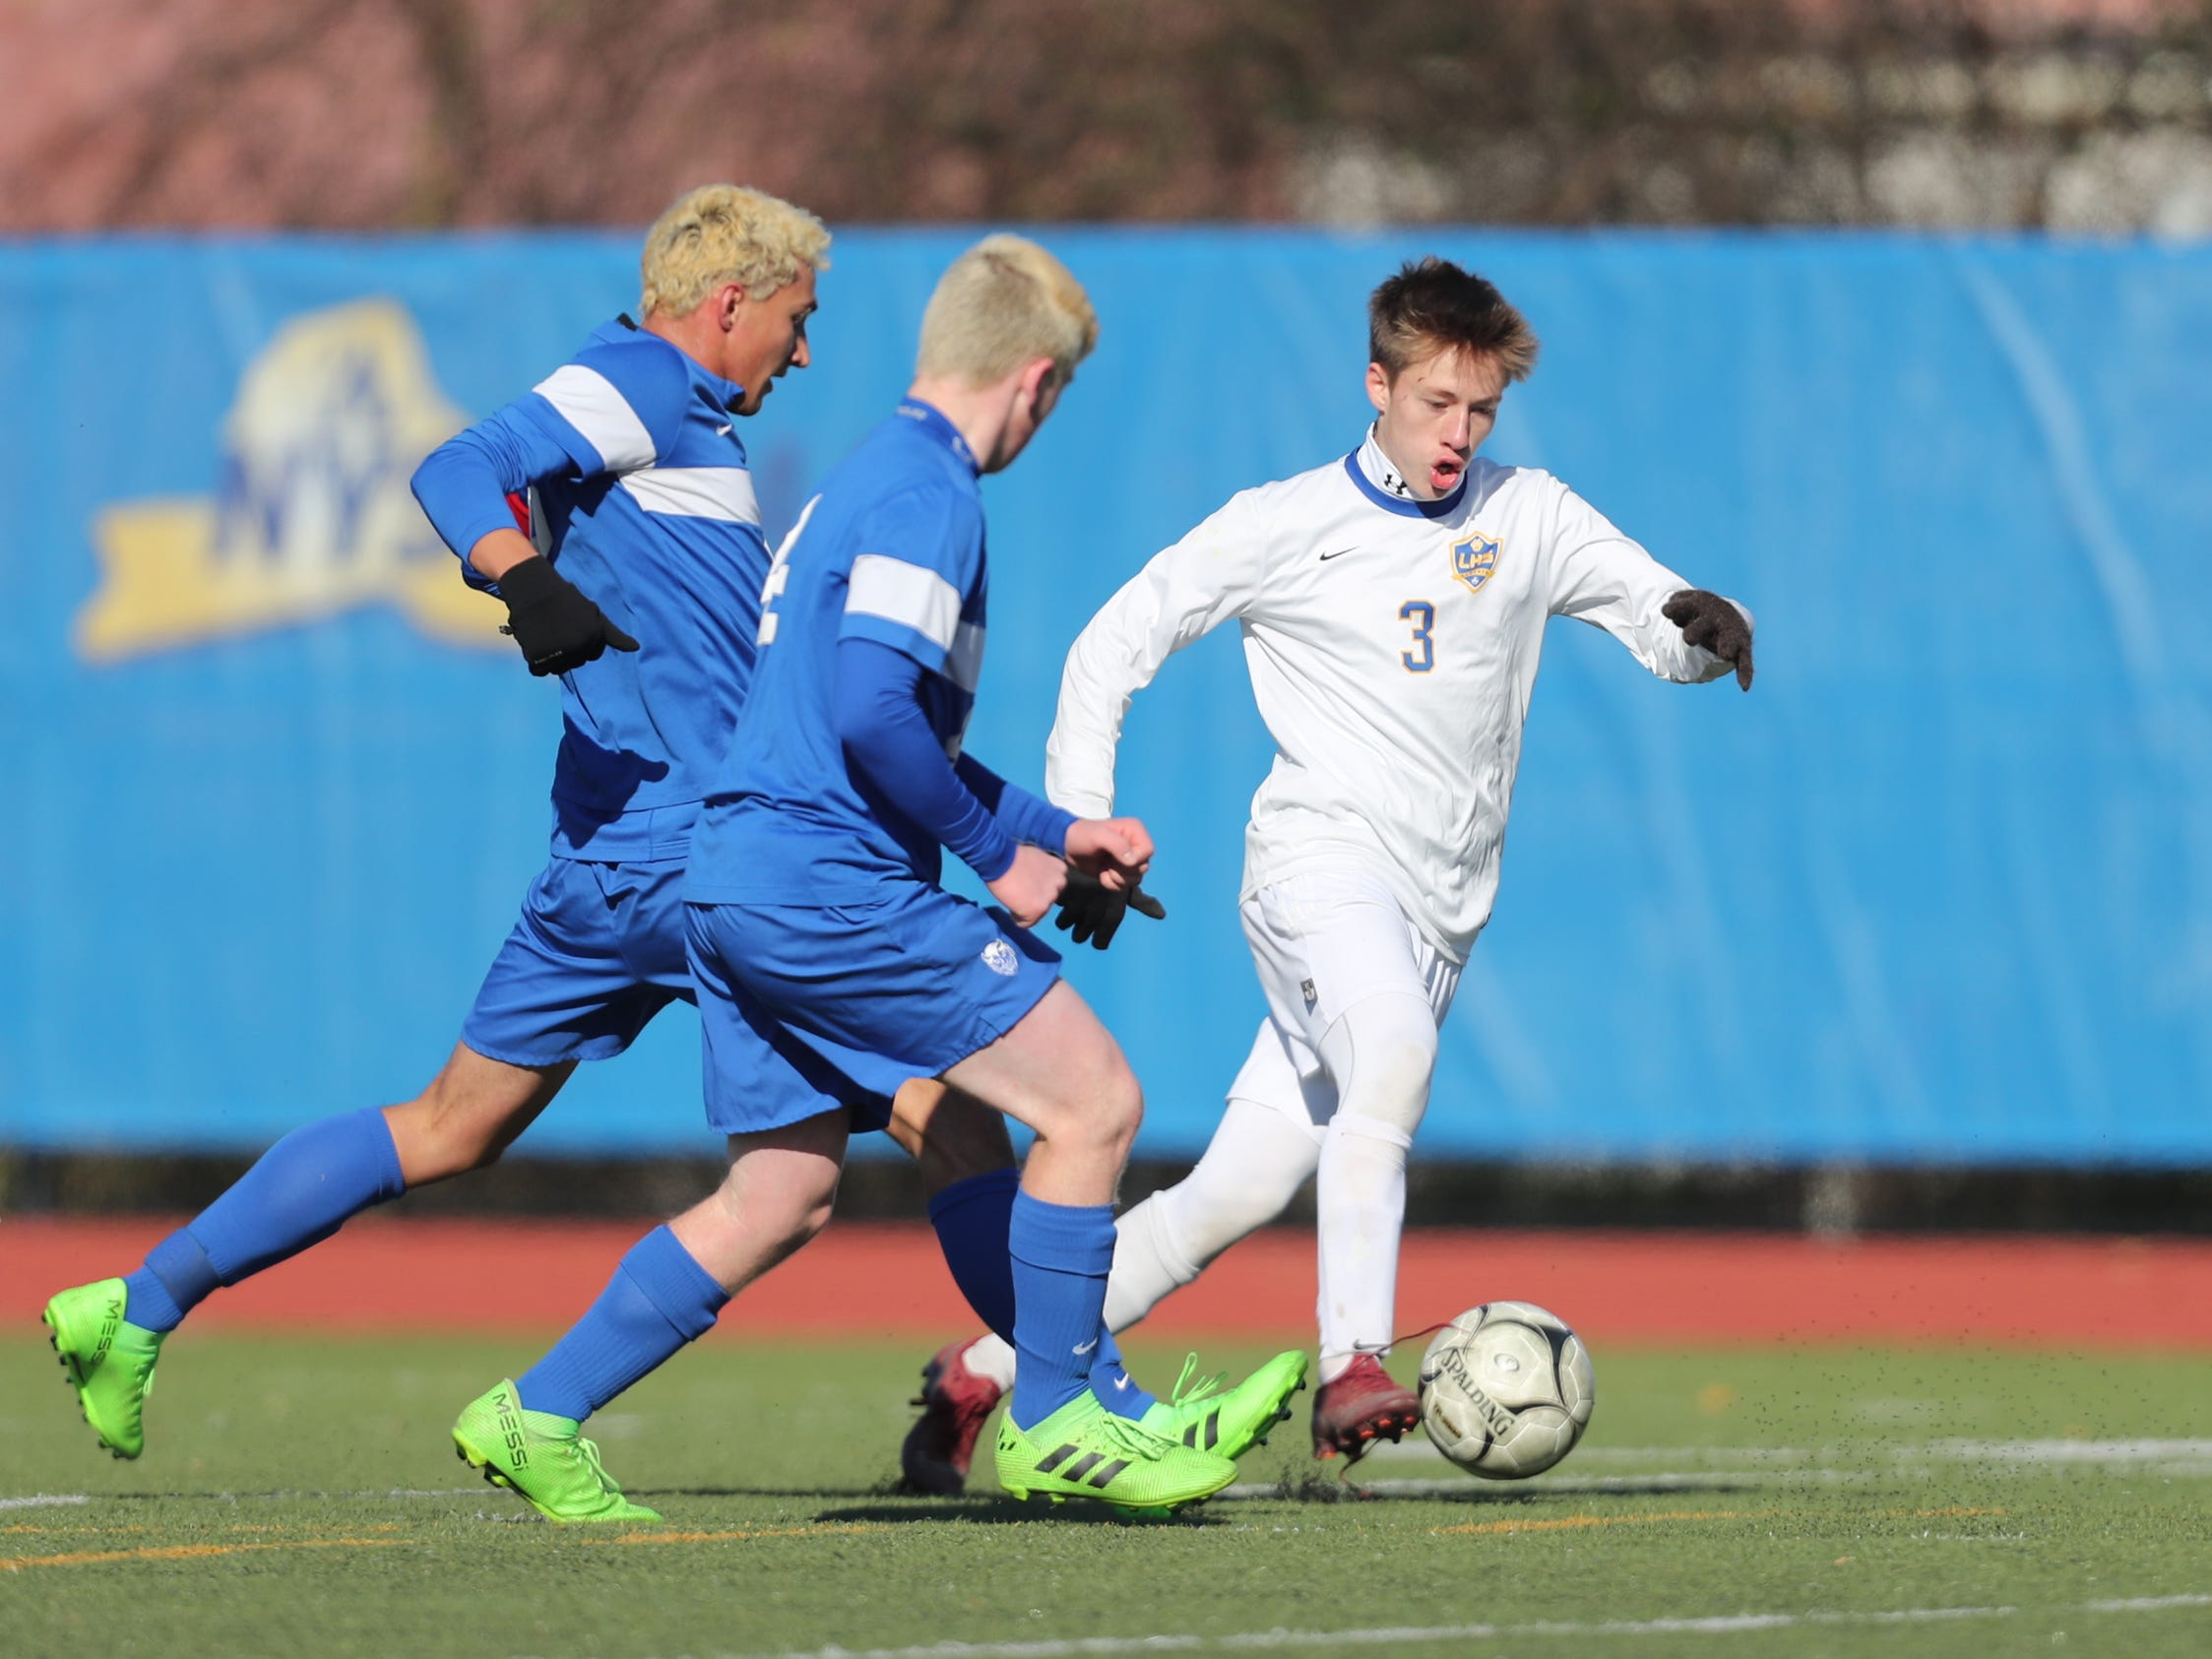 Lansing's Eric Goehler (3) works the ball through the Geneseo defense during Lansing's 3-0 win over Geneseo in the Class C boys state soccer final at Middletown High School in Middletown on Sunday, November 11, 2018.